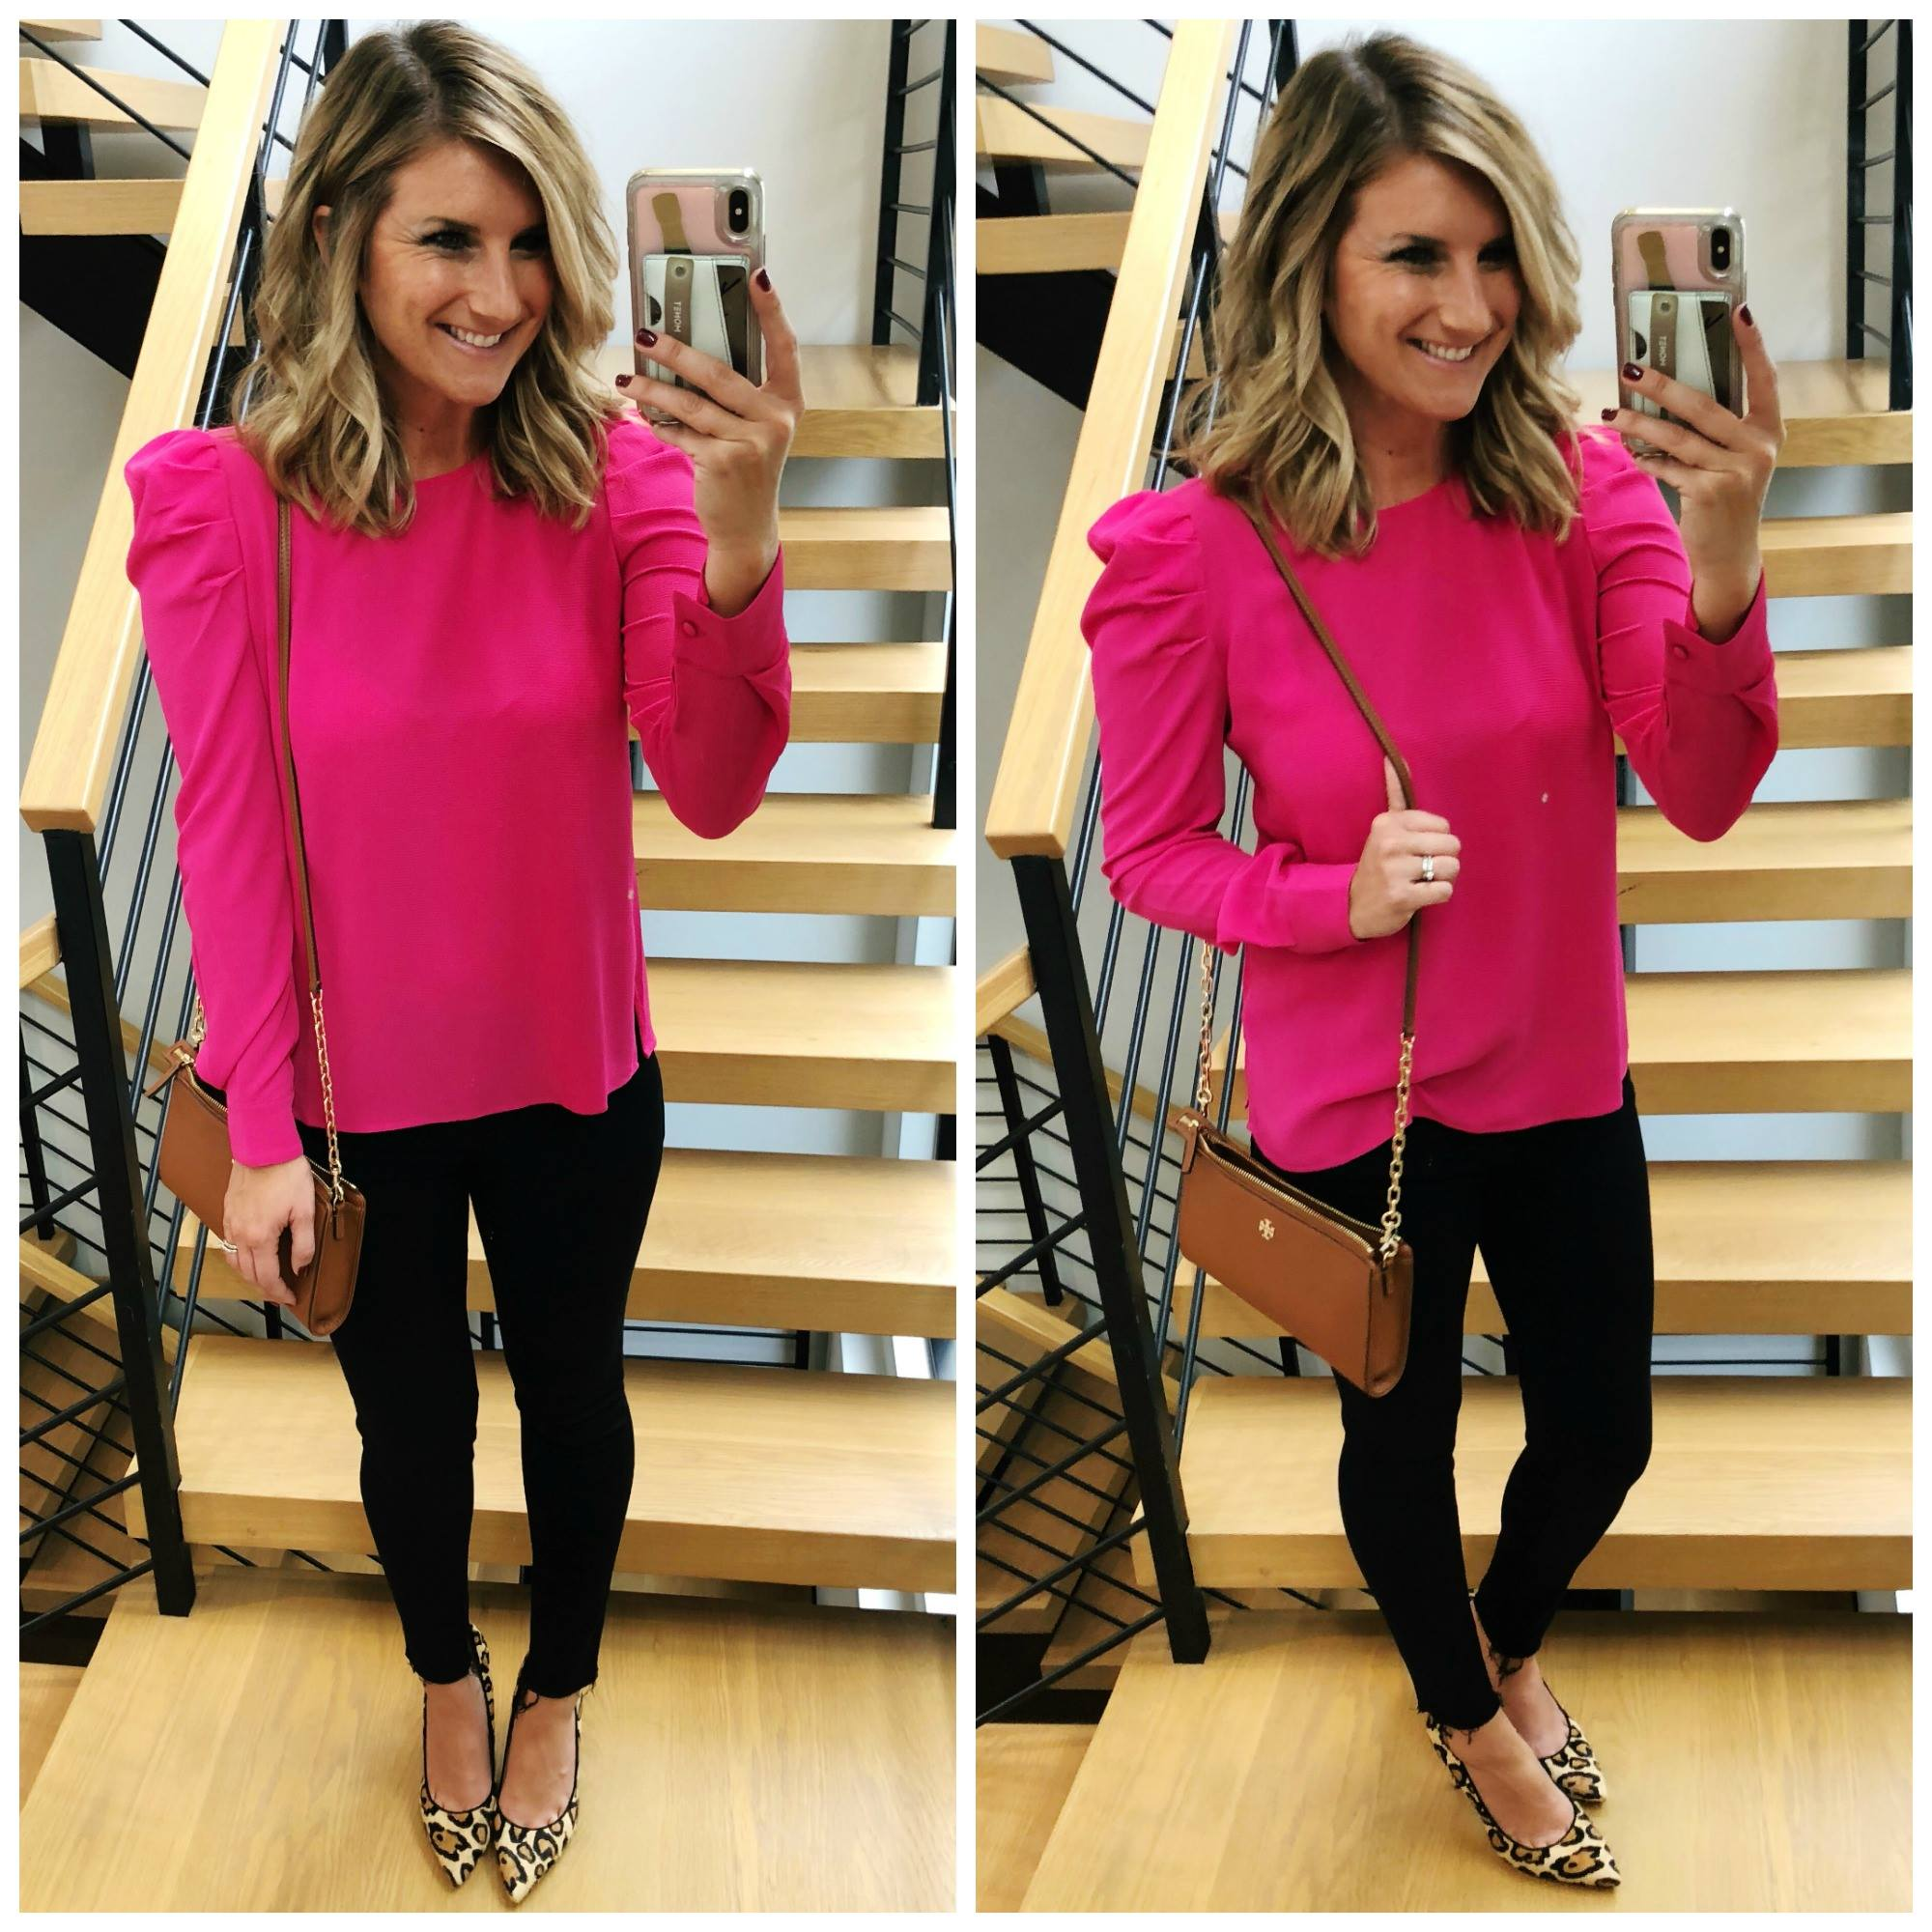 Casual Work Wear // Date Night // Night Out // Bright Colored Top